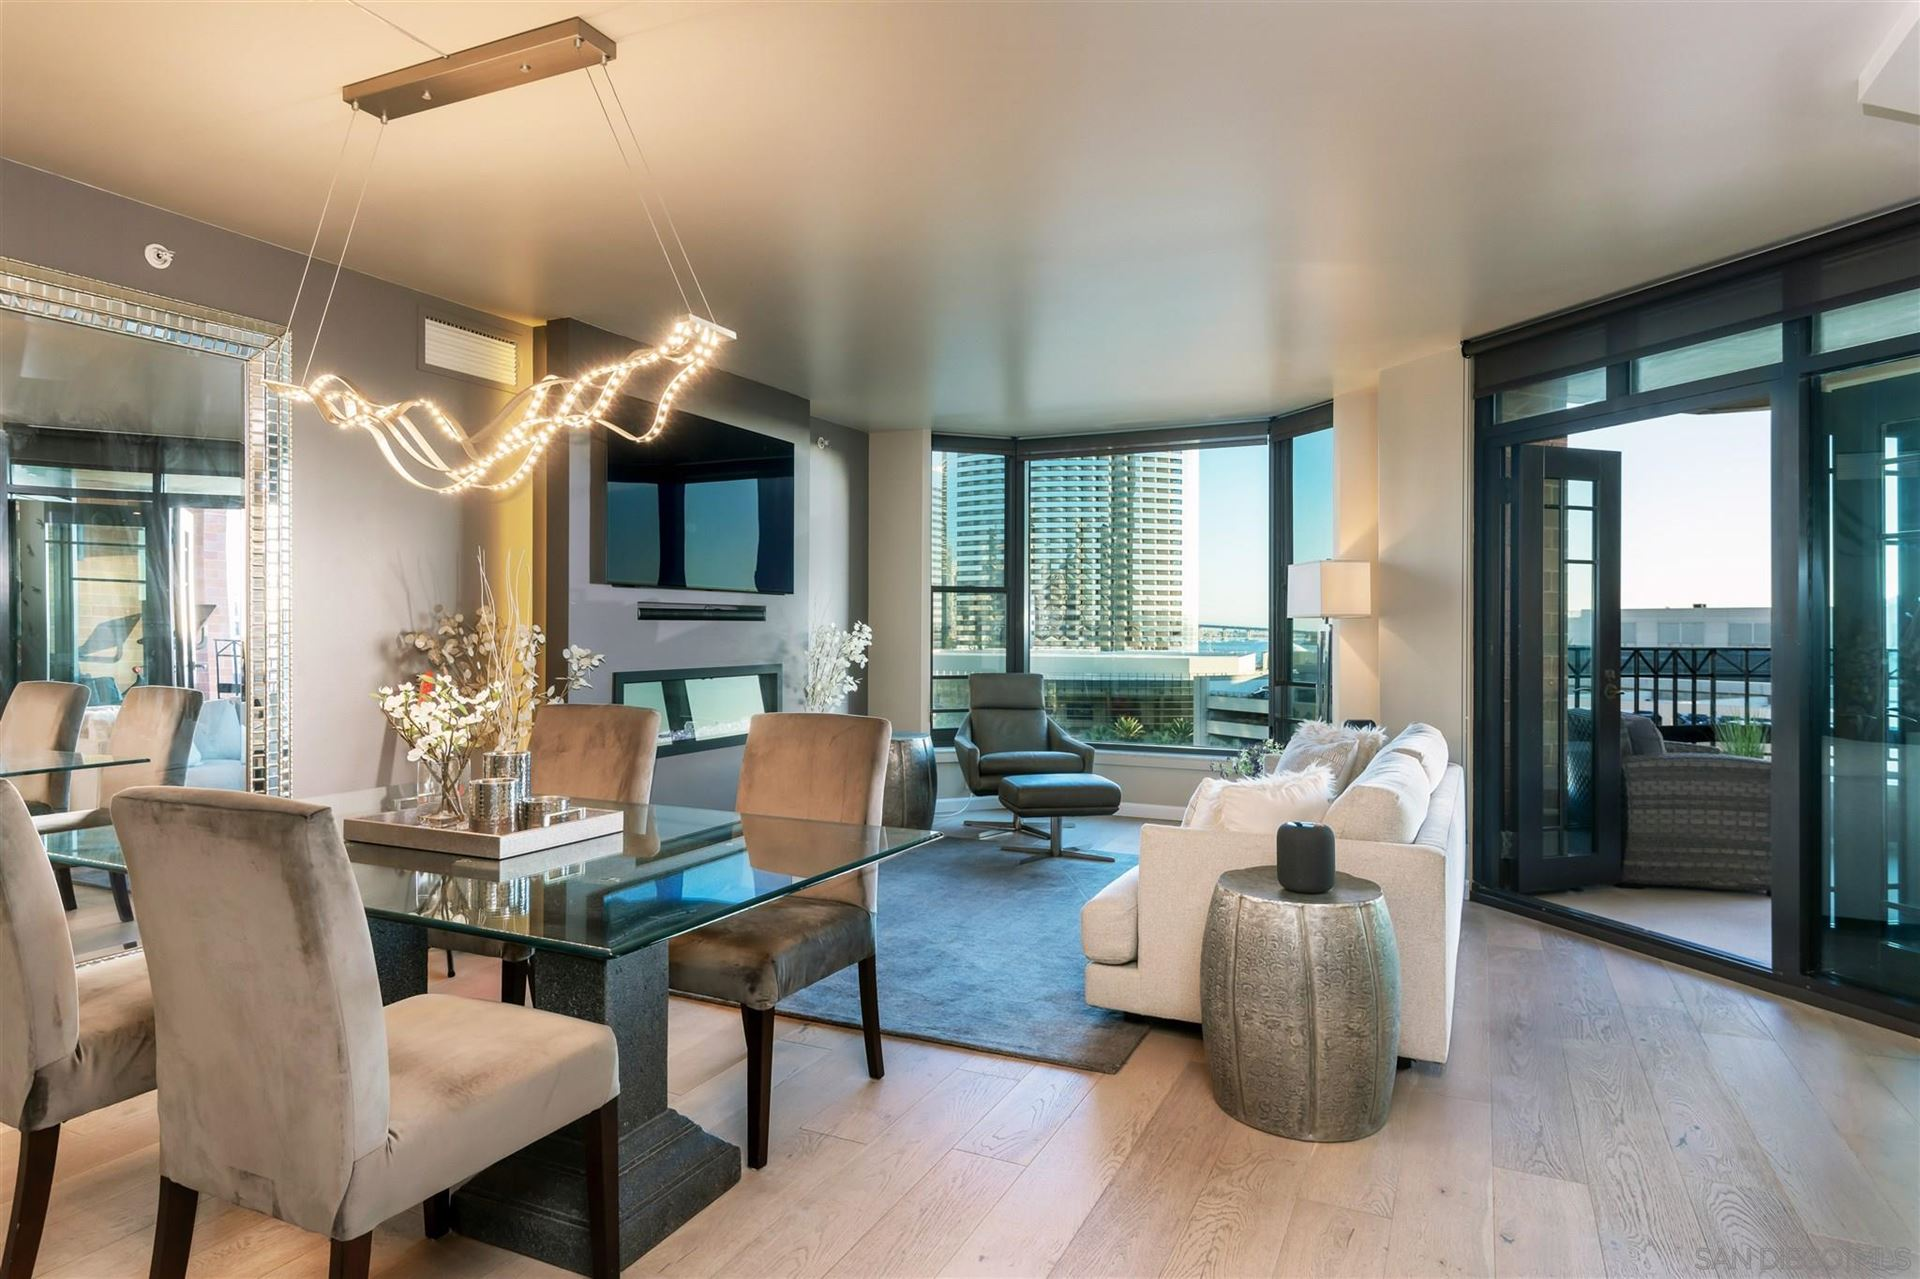 Photo for 500 W Harbor Dr #904, San Diego, CA 92101 (MLS # 210003658)